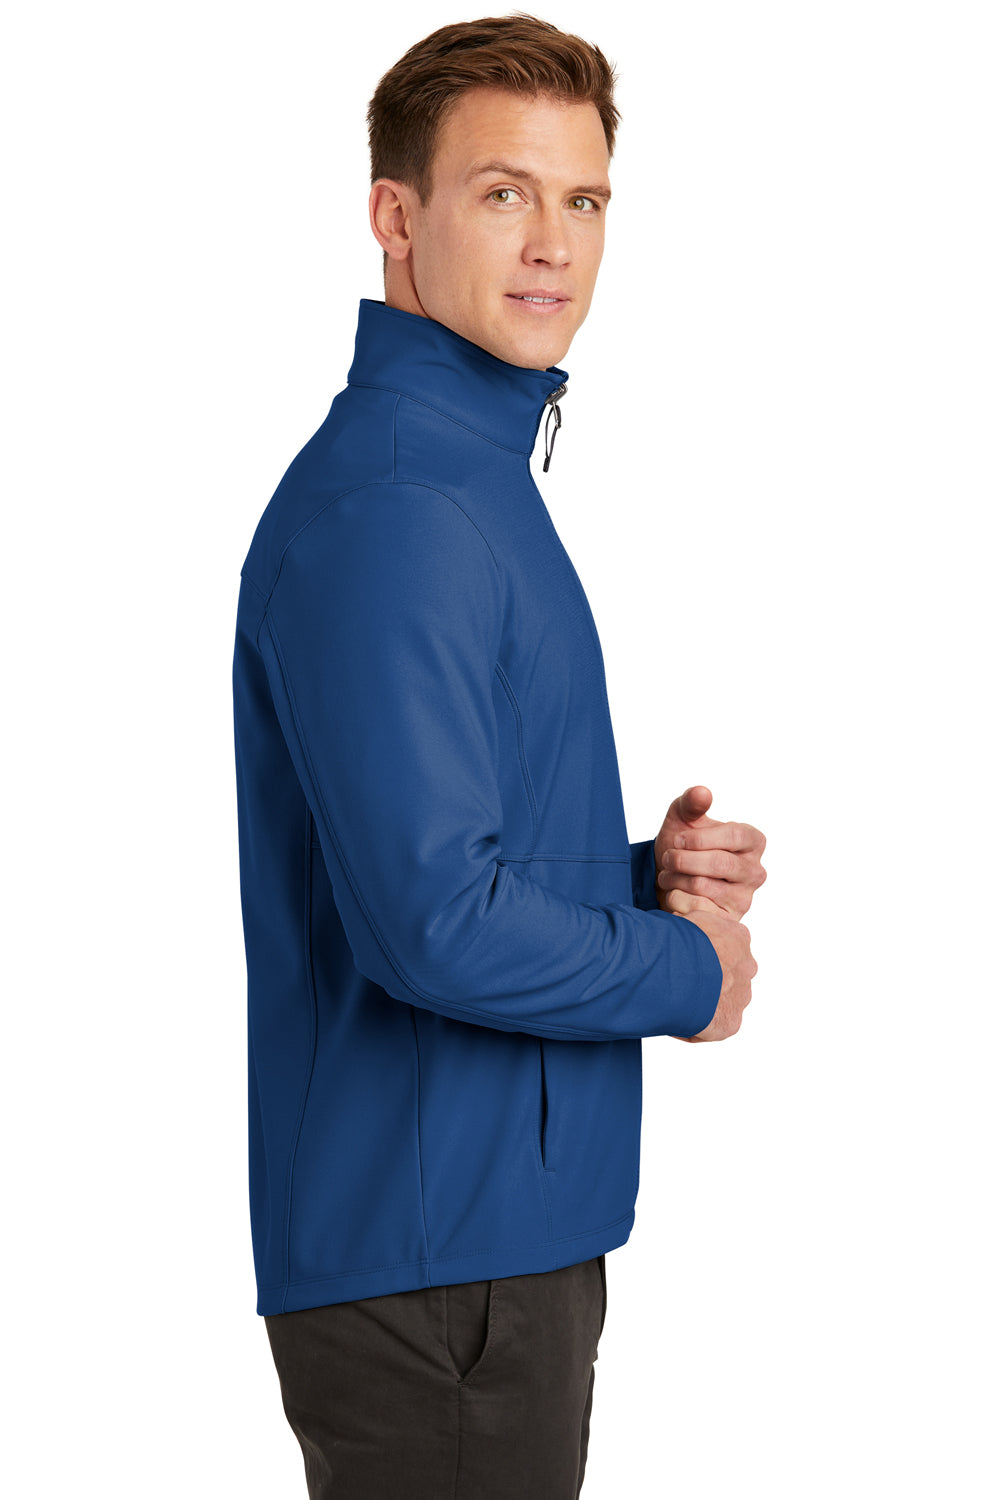 Port Authority J901 Mens Collective Wind & Water Resistant Full Zip Jacket Night Sky Blue Side